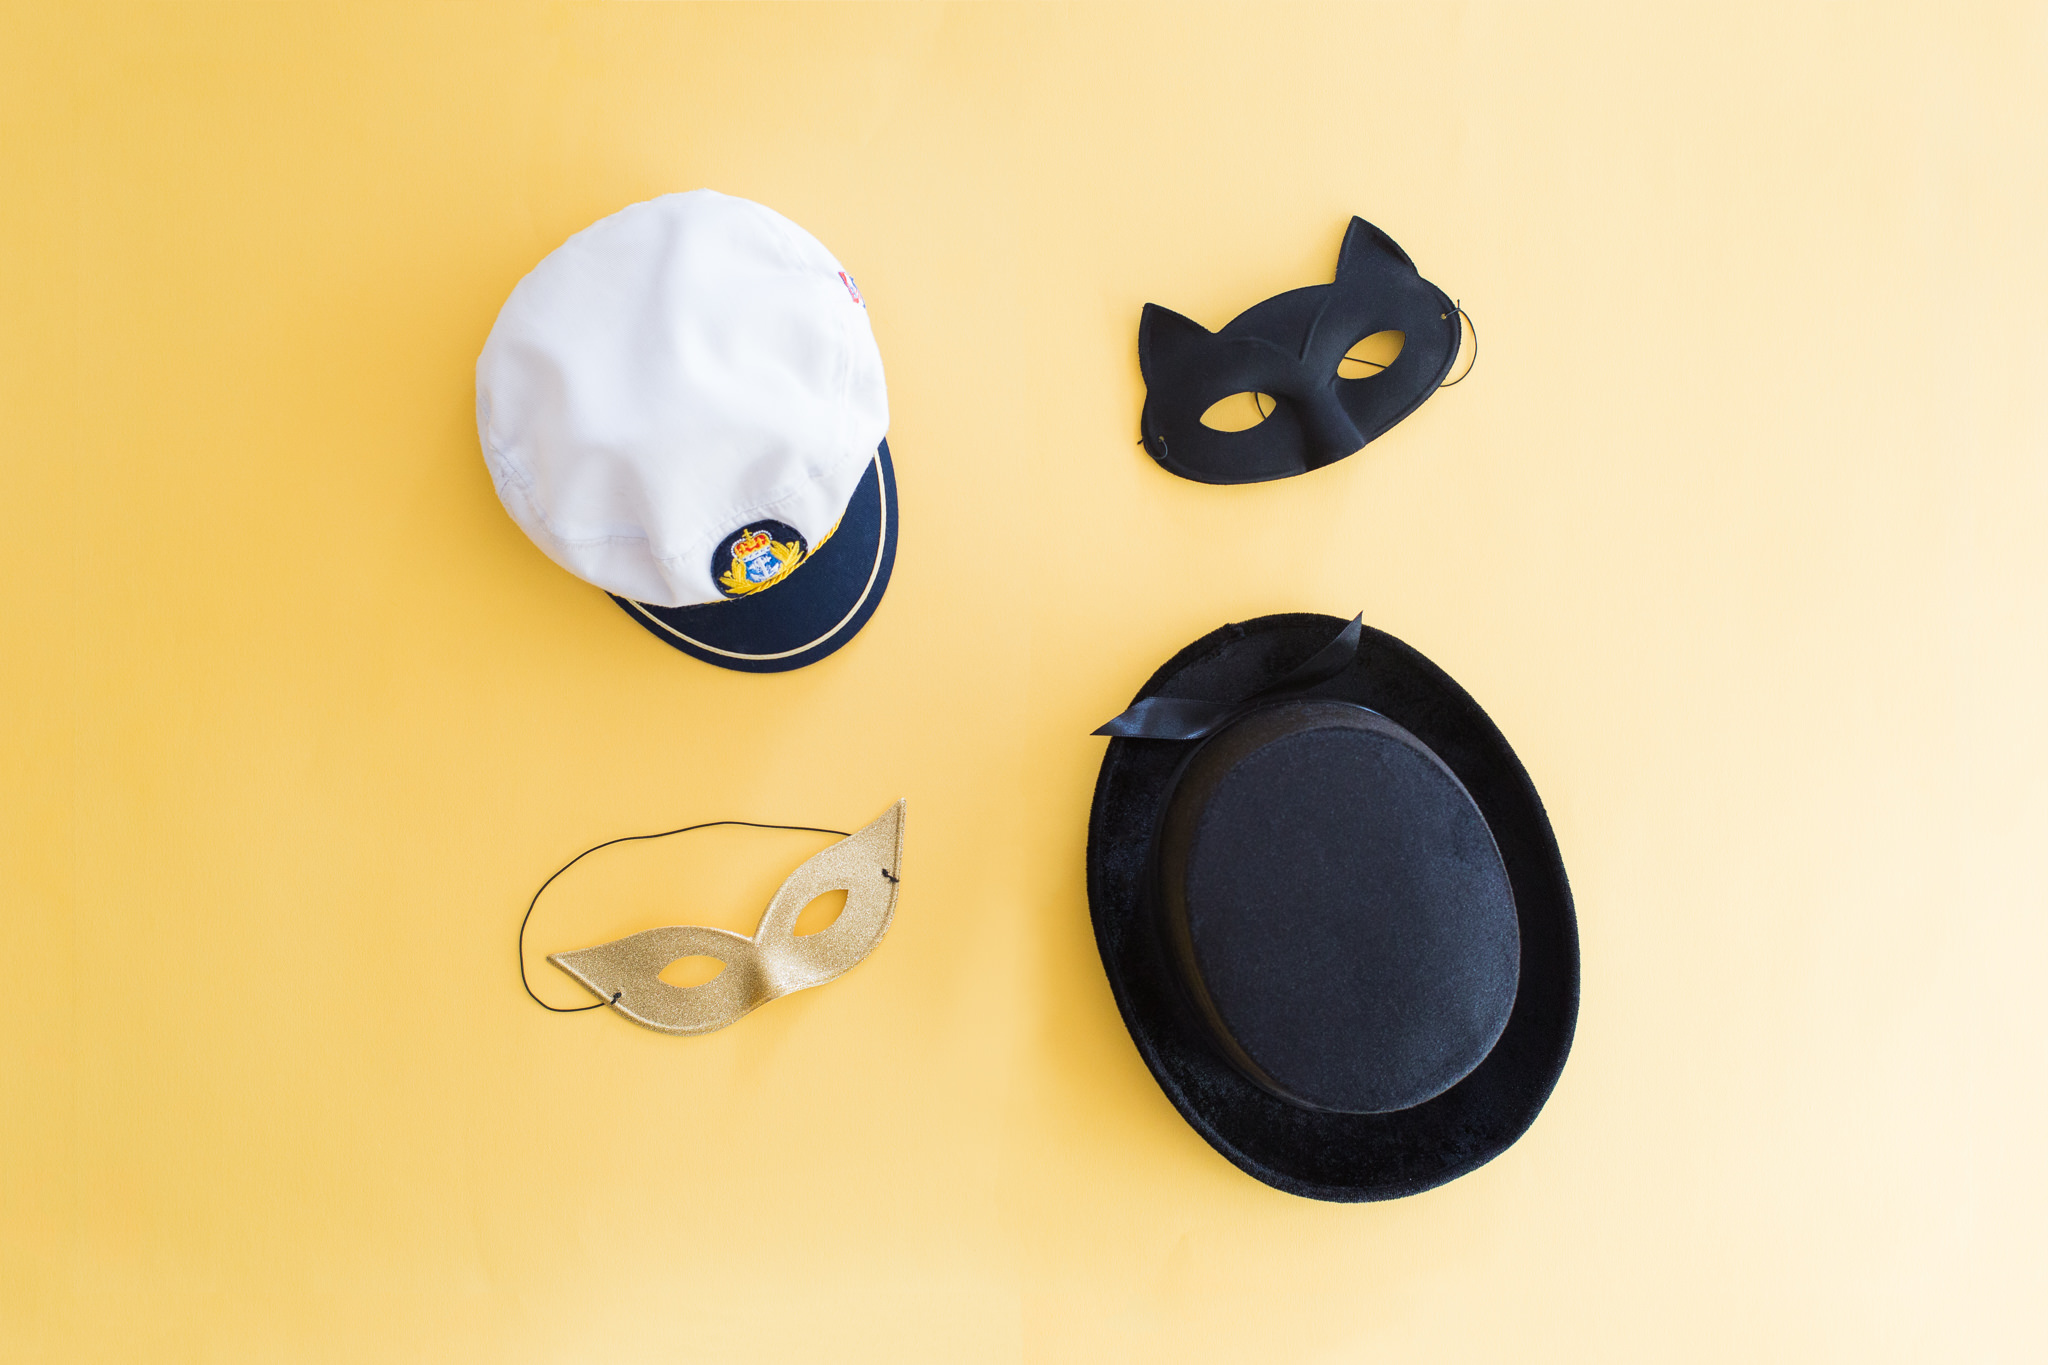 photo-booth-props-sydney-hire-corporate-marketing-brand-event-top-hat-black-tie-sailors-hat-gold-glitter-mask-cat-batman-yellow-brand-activation.jpg